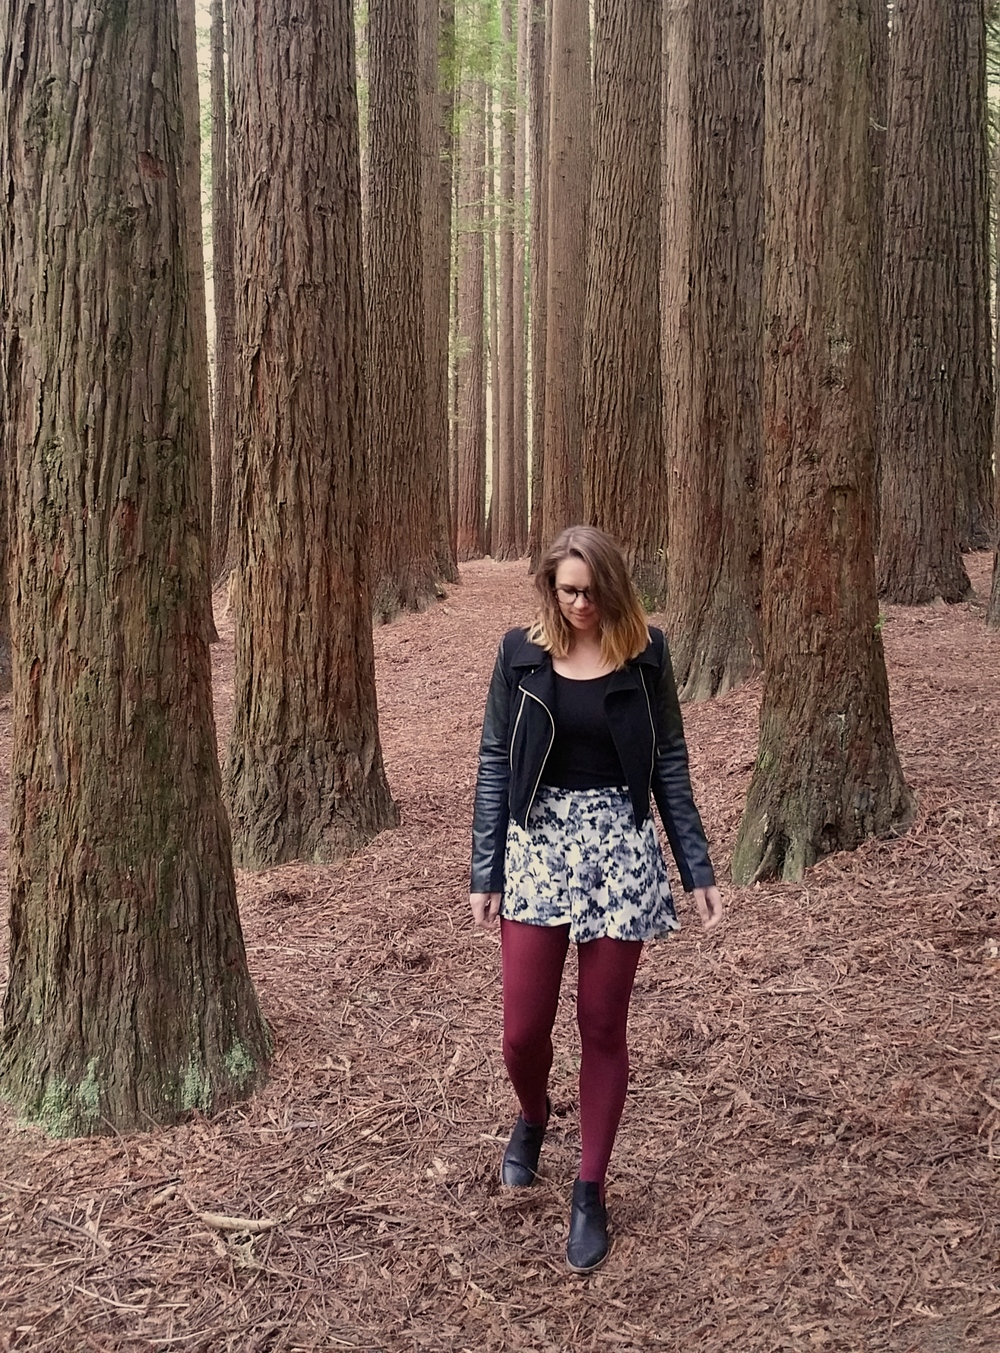 california-redwoods-otway-rainforest-red-tights